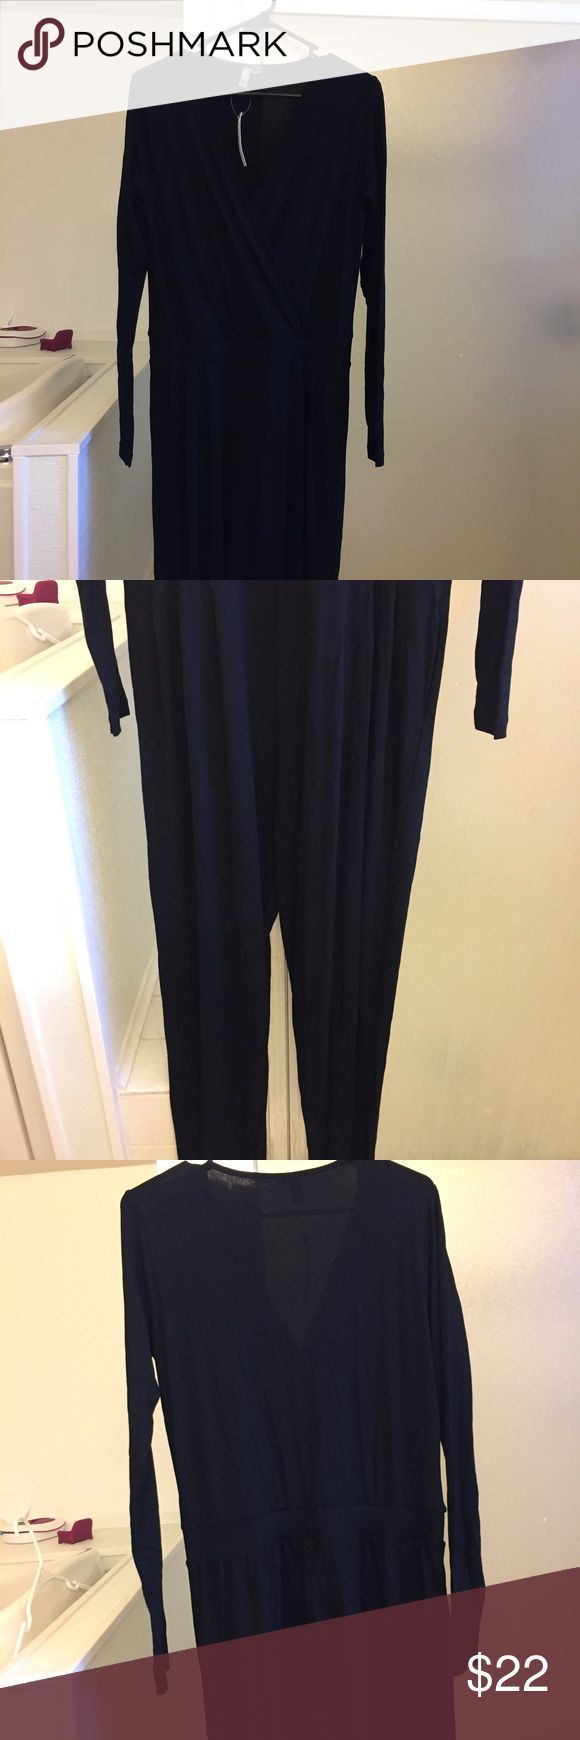 Black long sleeve romper ASOS size 10 NEW W/TAGS Beautiful romper. Hard to fit it in one photo so I took numerous of the entire thing. Great for tall people. (I'm 5' and it hangs on me). US size 10 ASOS Other